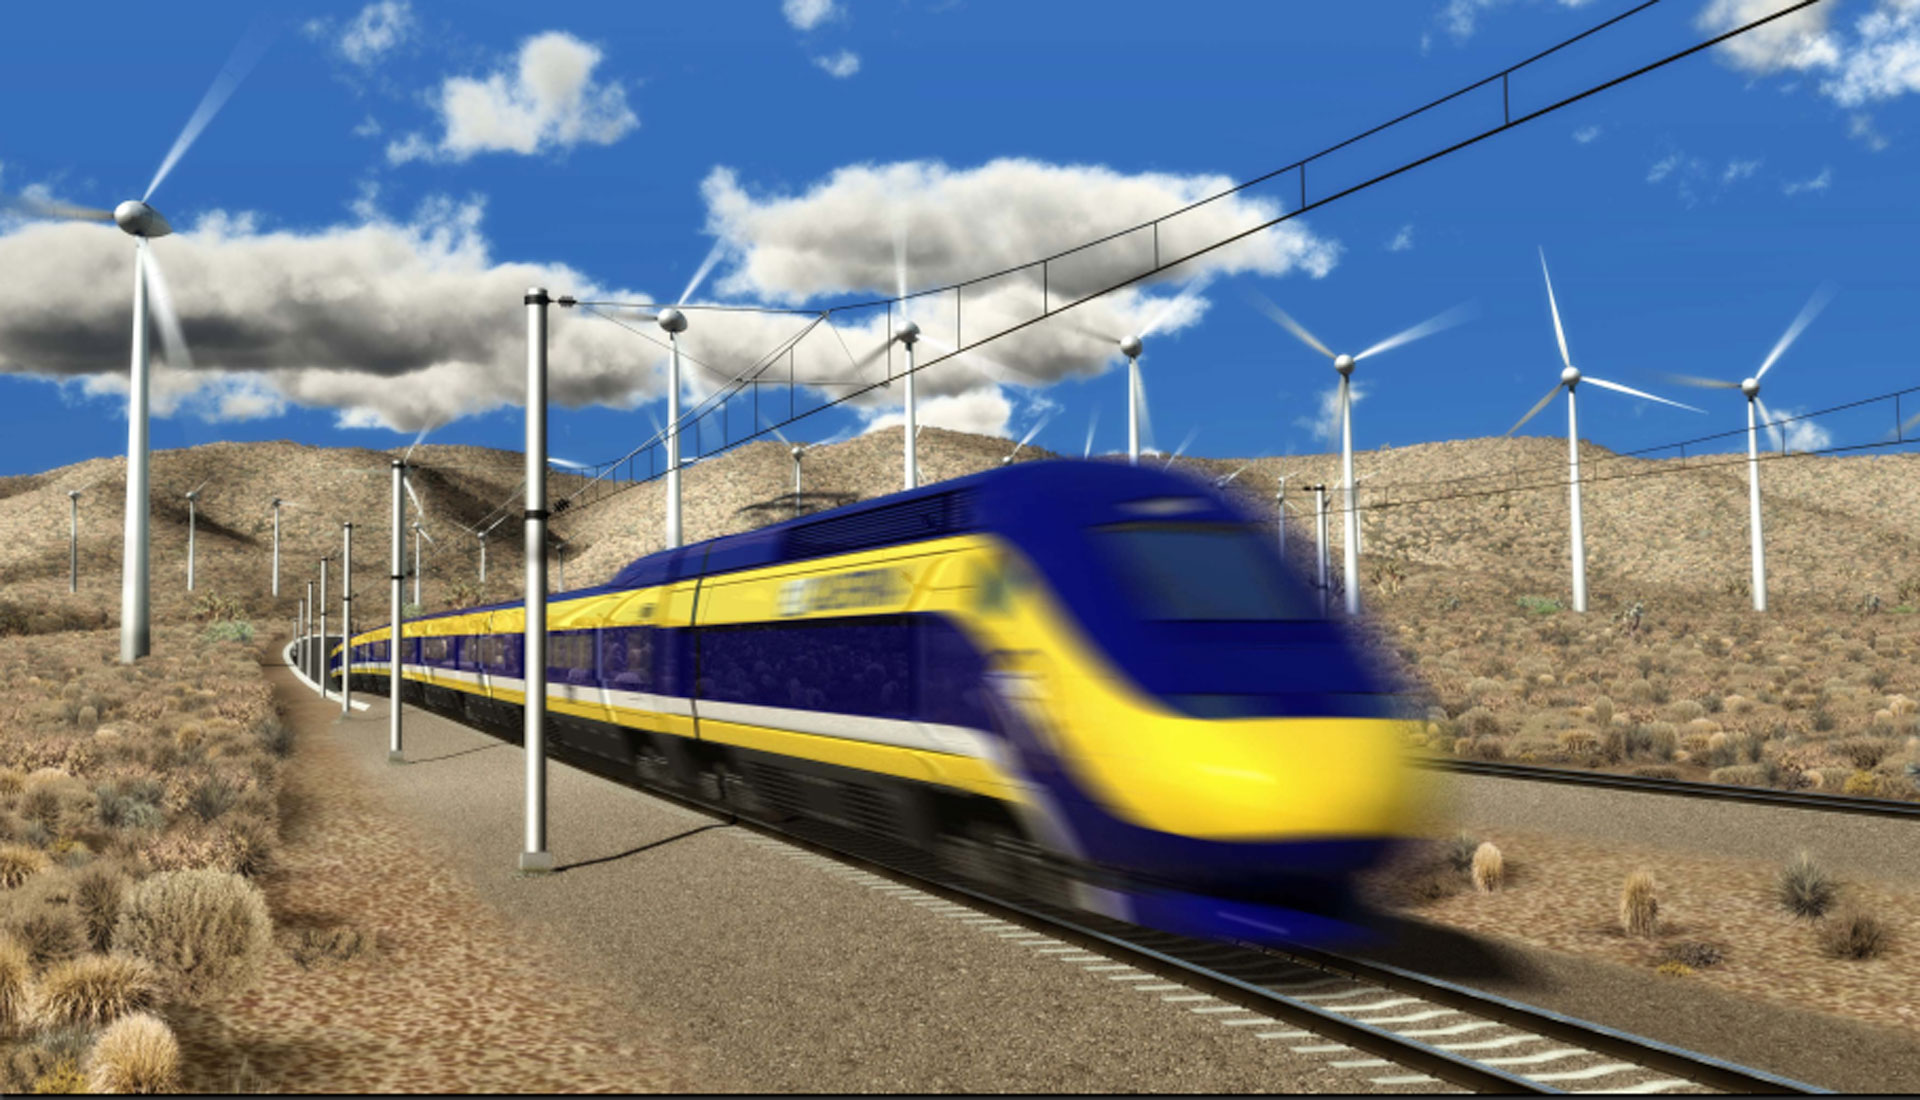 Rendering of high-speed rail train.